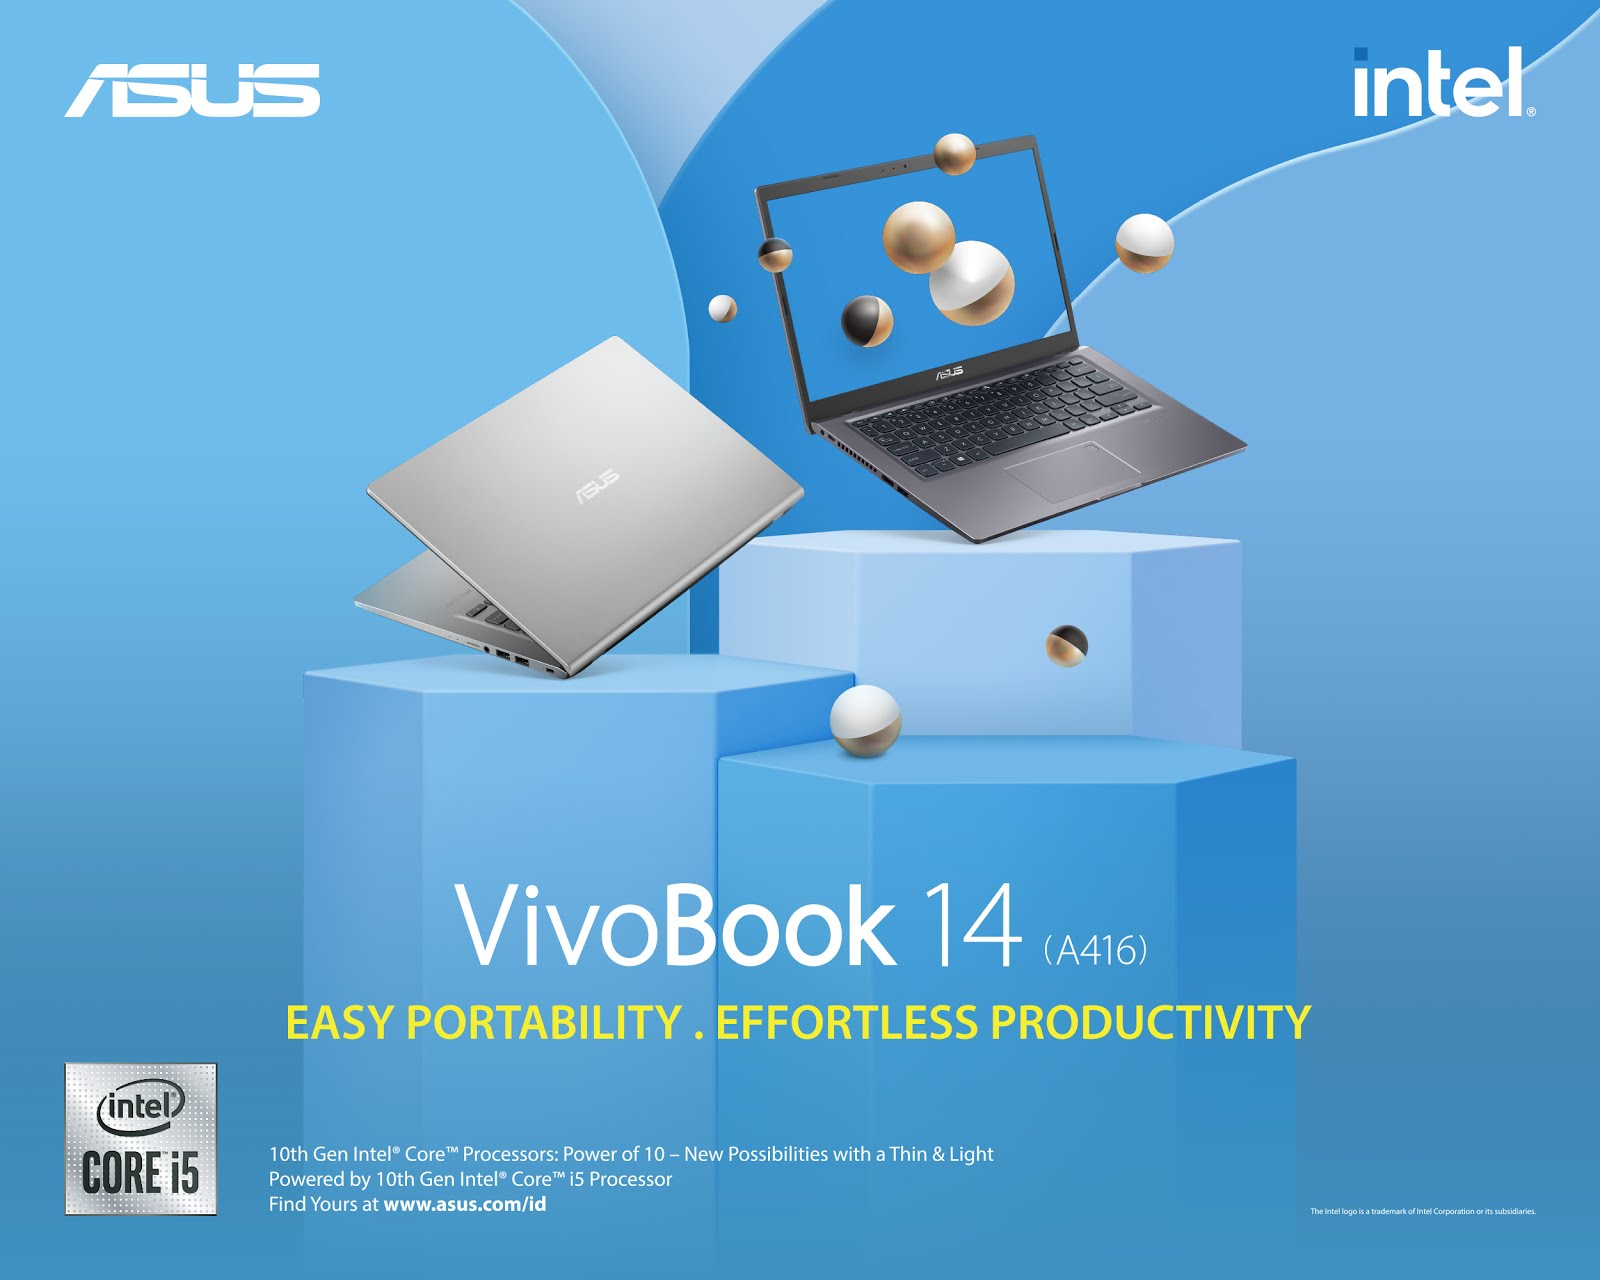 ASUS VivoBook 14 A416 Blog Competition